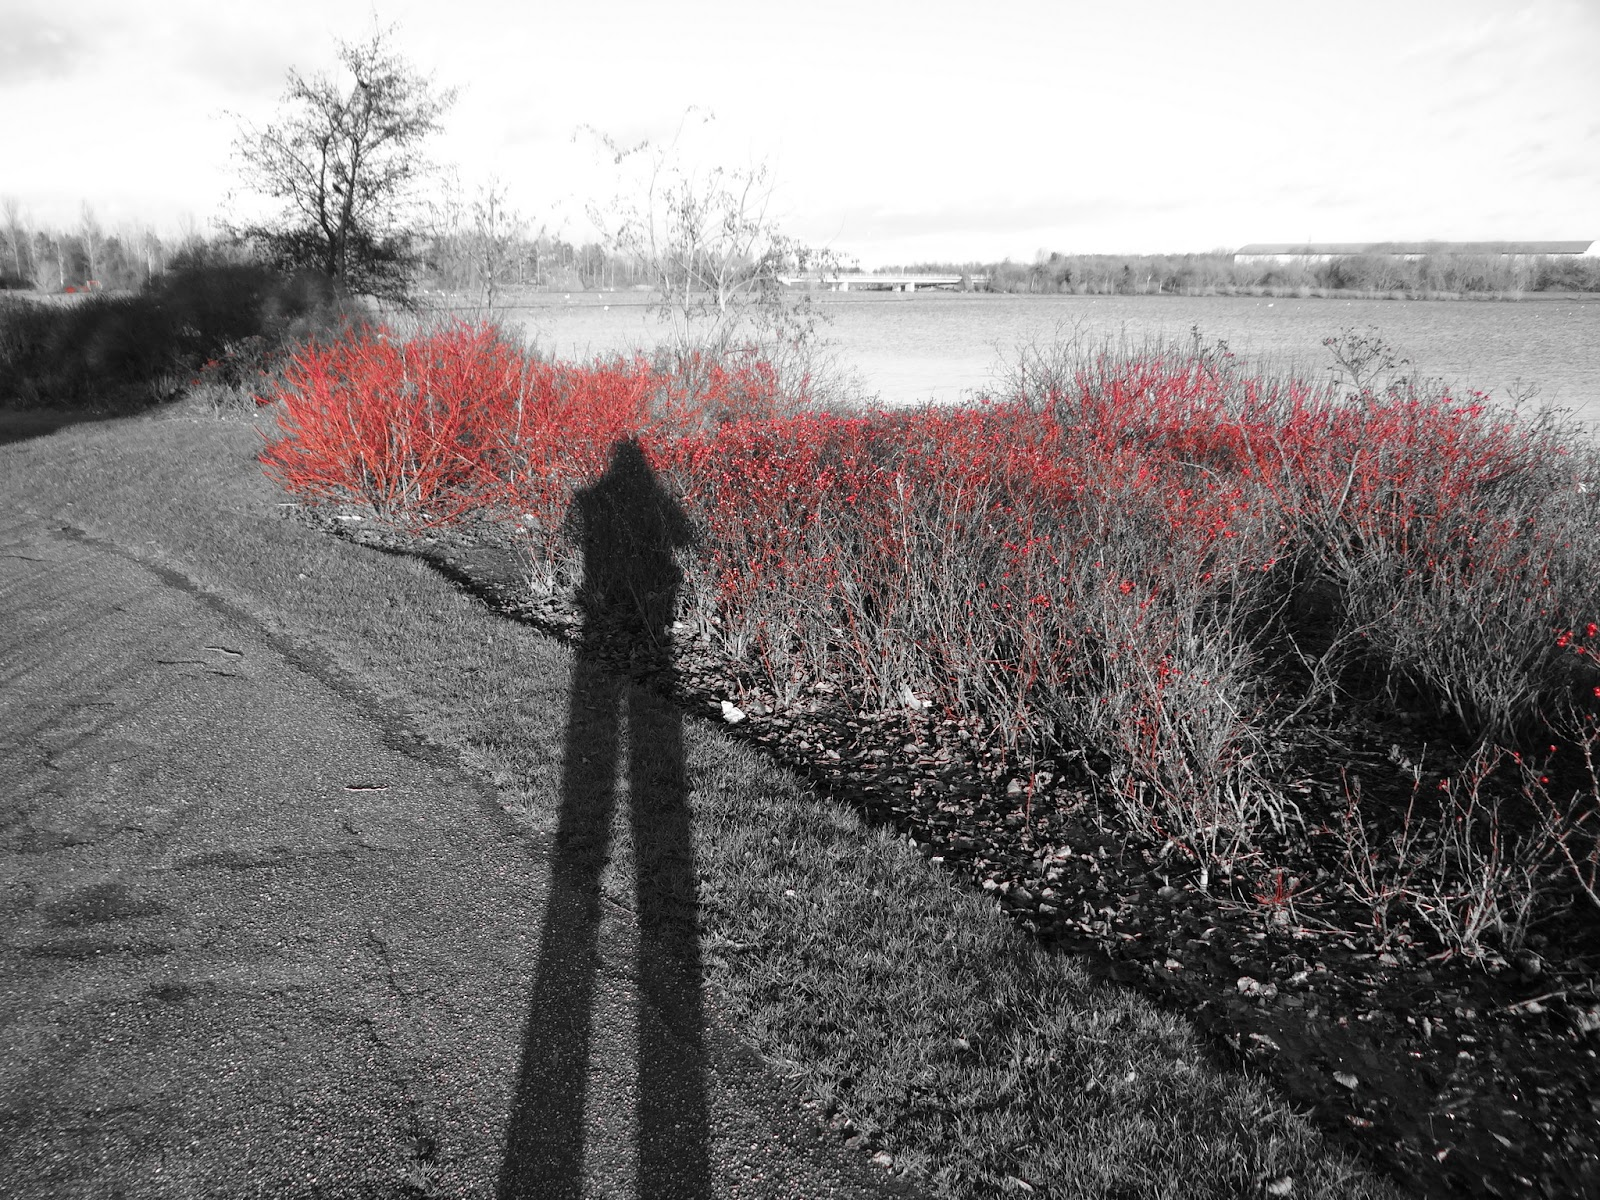 Pathway with Red Filter